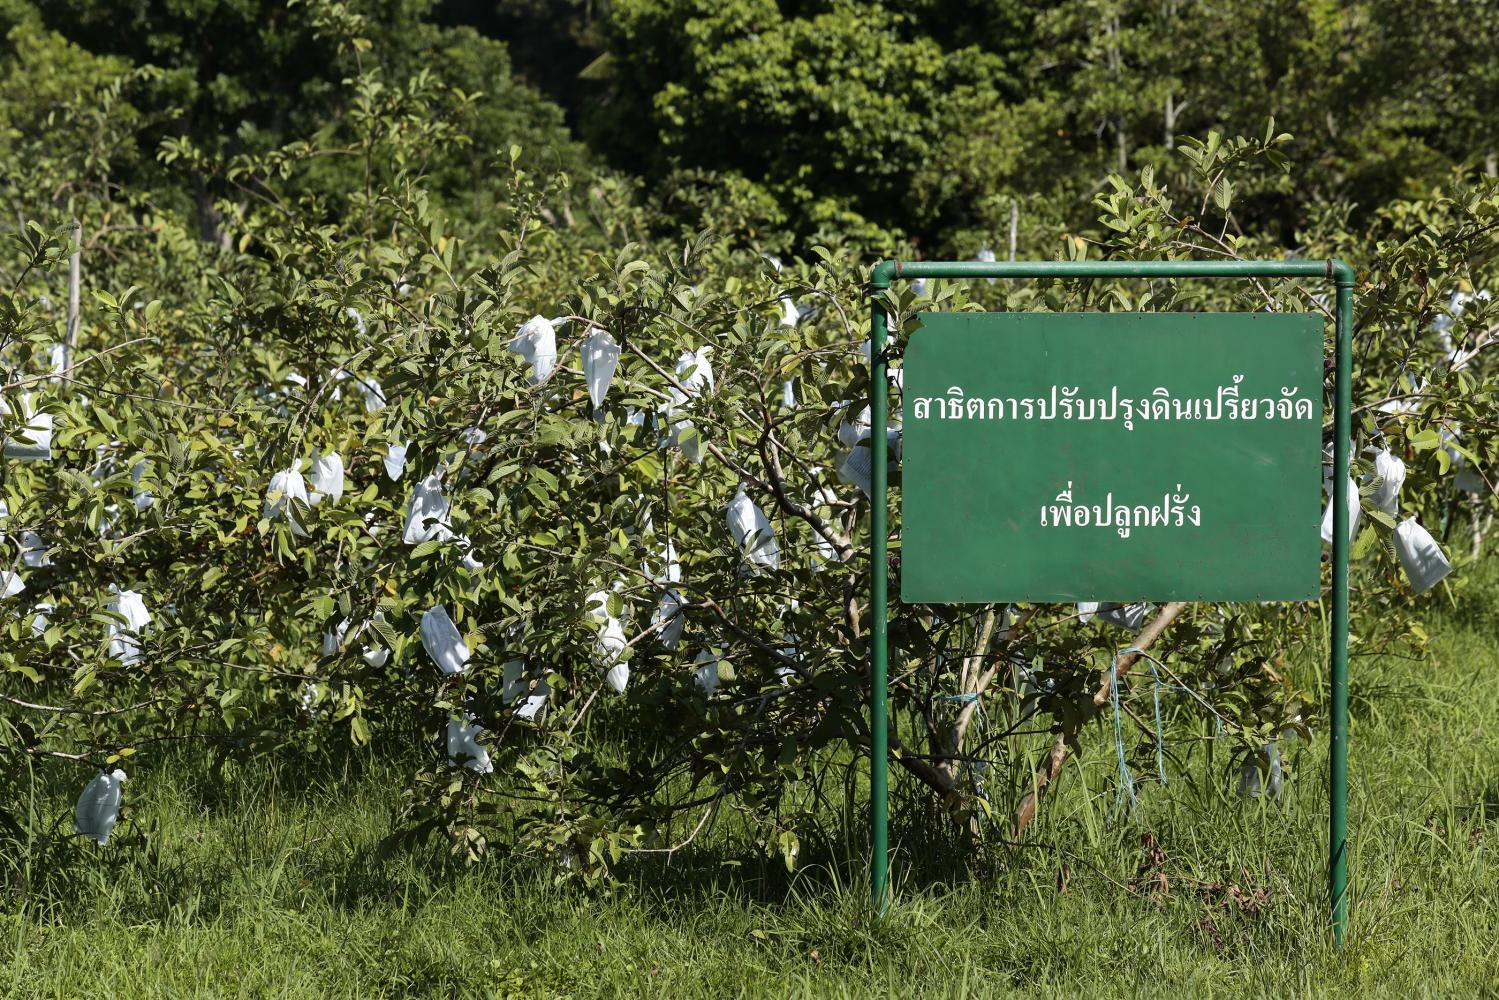 Pikulthong Royal Development Study Centre initiated by His Majesty King Bhumibol Adulyadej The Great in Narathiwat was set up to serve as a centre for studying farming and livestock. (Photo by Patipat Janthong)